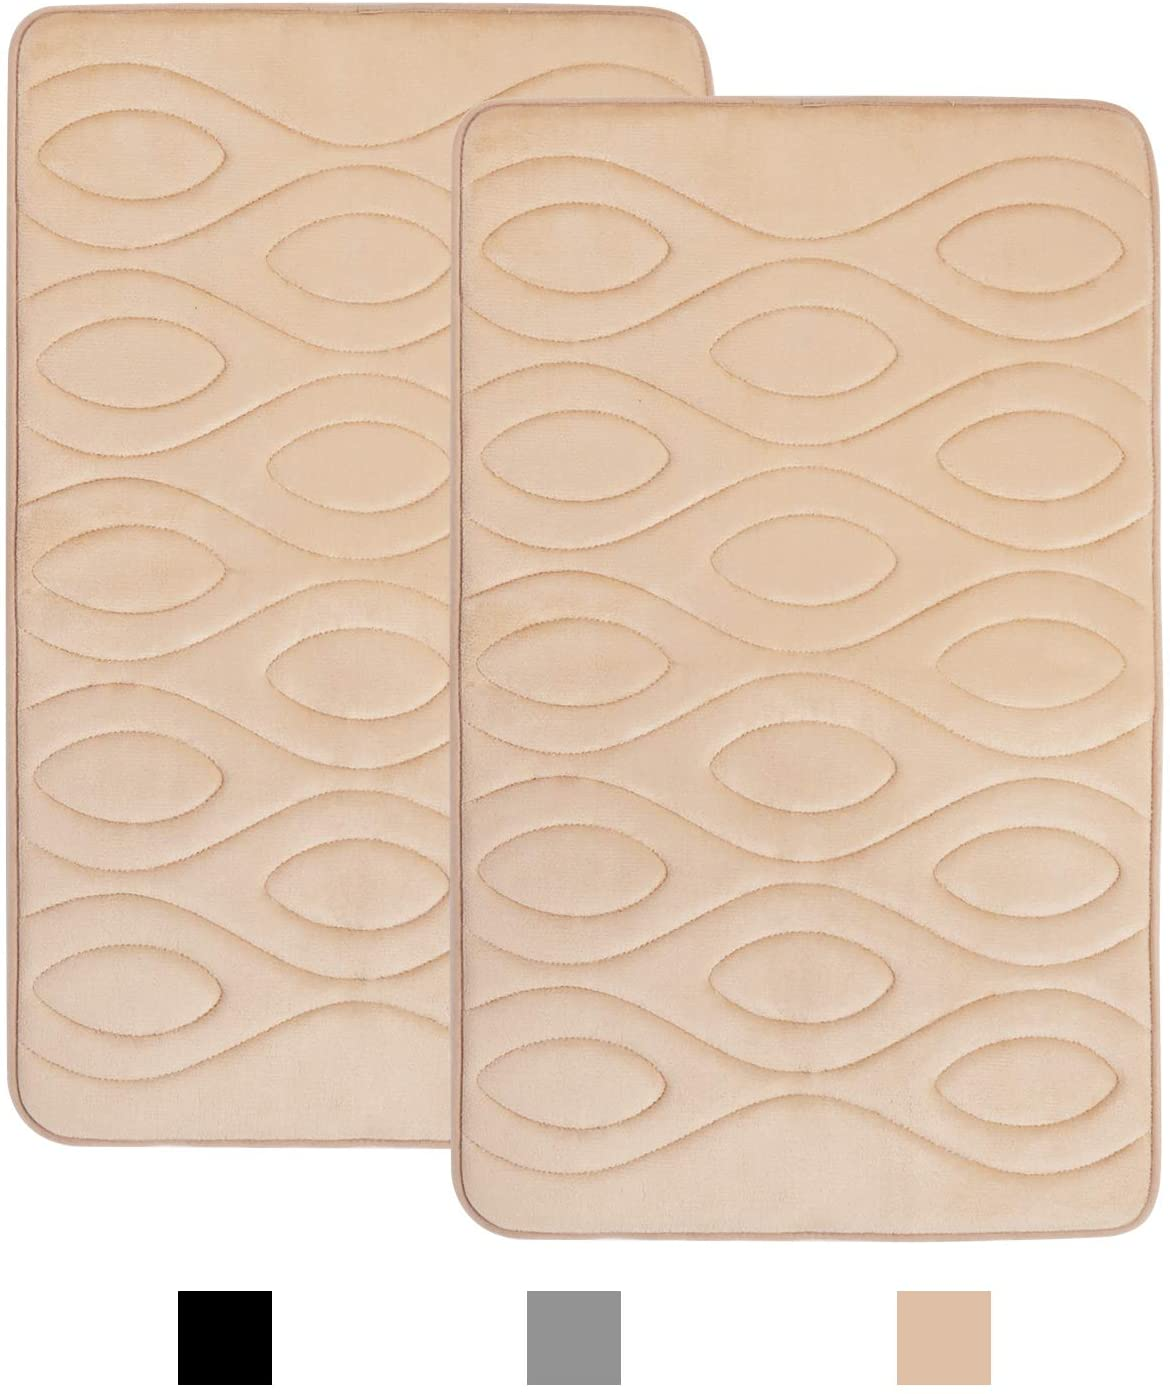 Memory Foam Soft Bath Mats 2 Pack Set 20x31 inch,KIMODE Anti-Fatigue Non Slip Water Absorbent Bathroom Rugs Cushion Thick Bath Floor Rug Machine Washable Durable Bottom Runner Rug for Shower Toilet